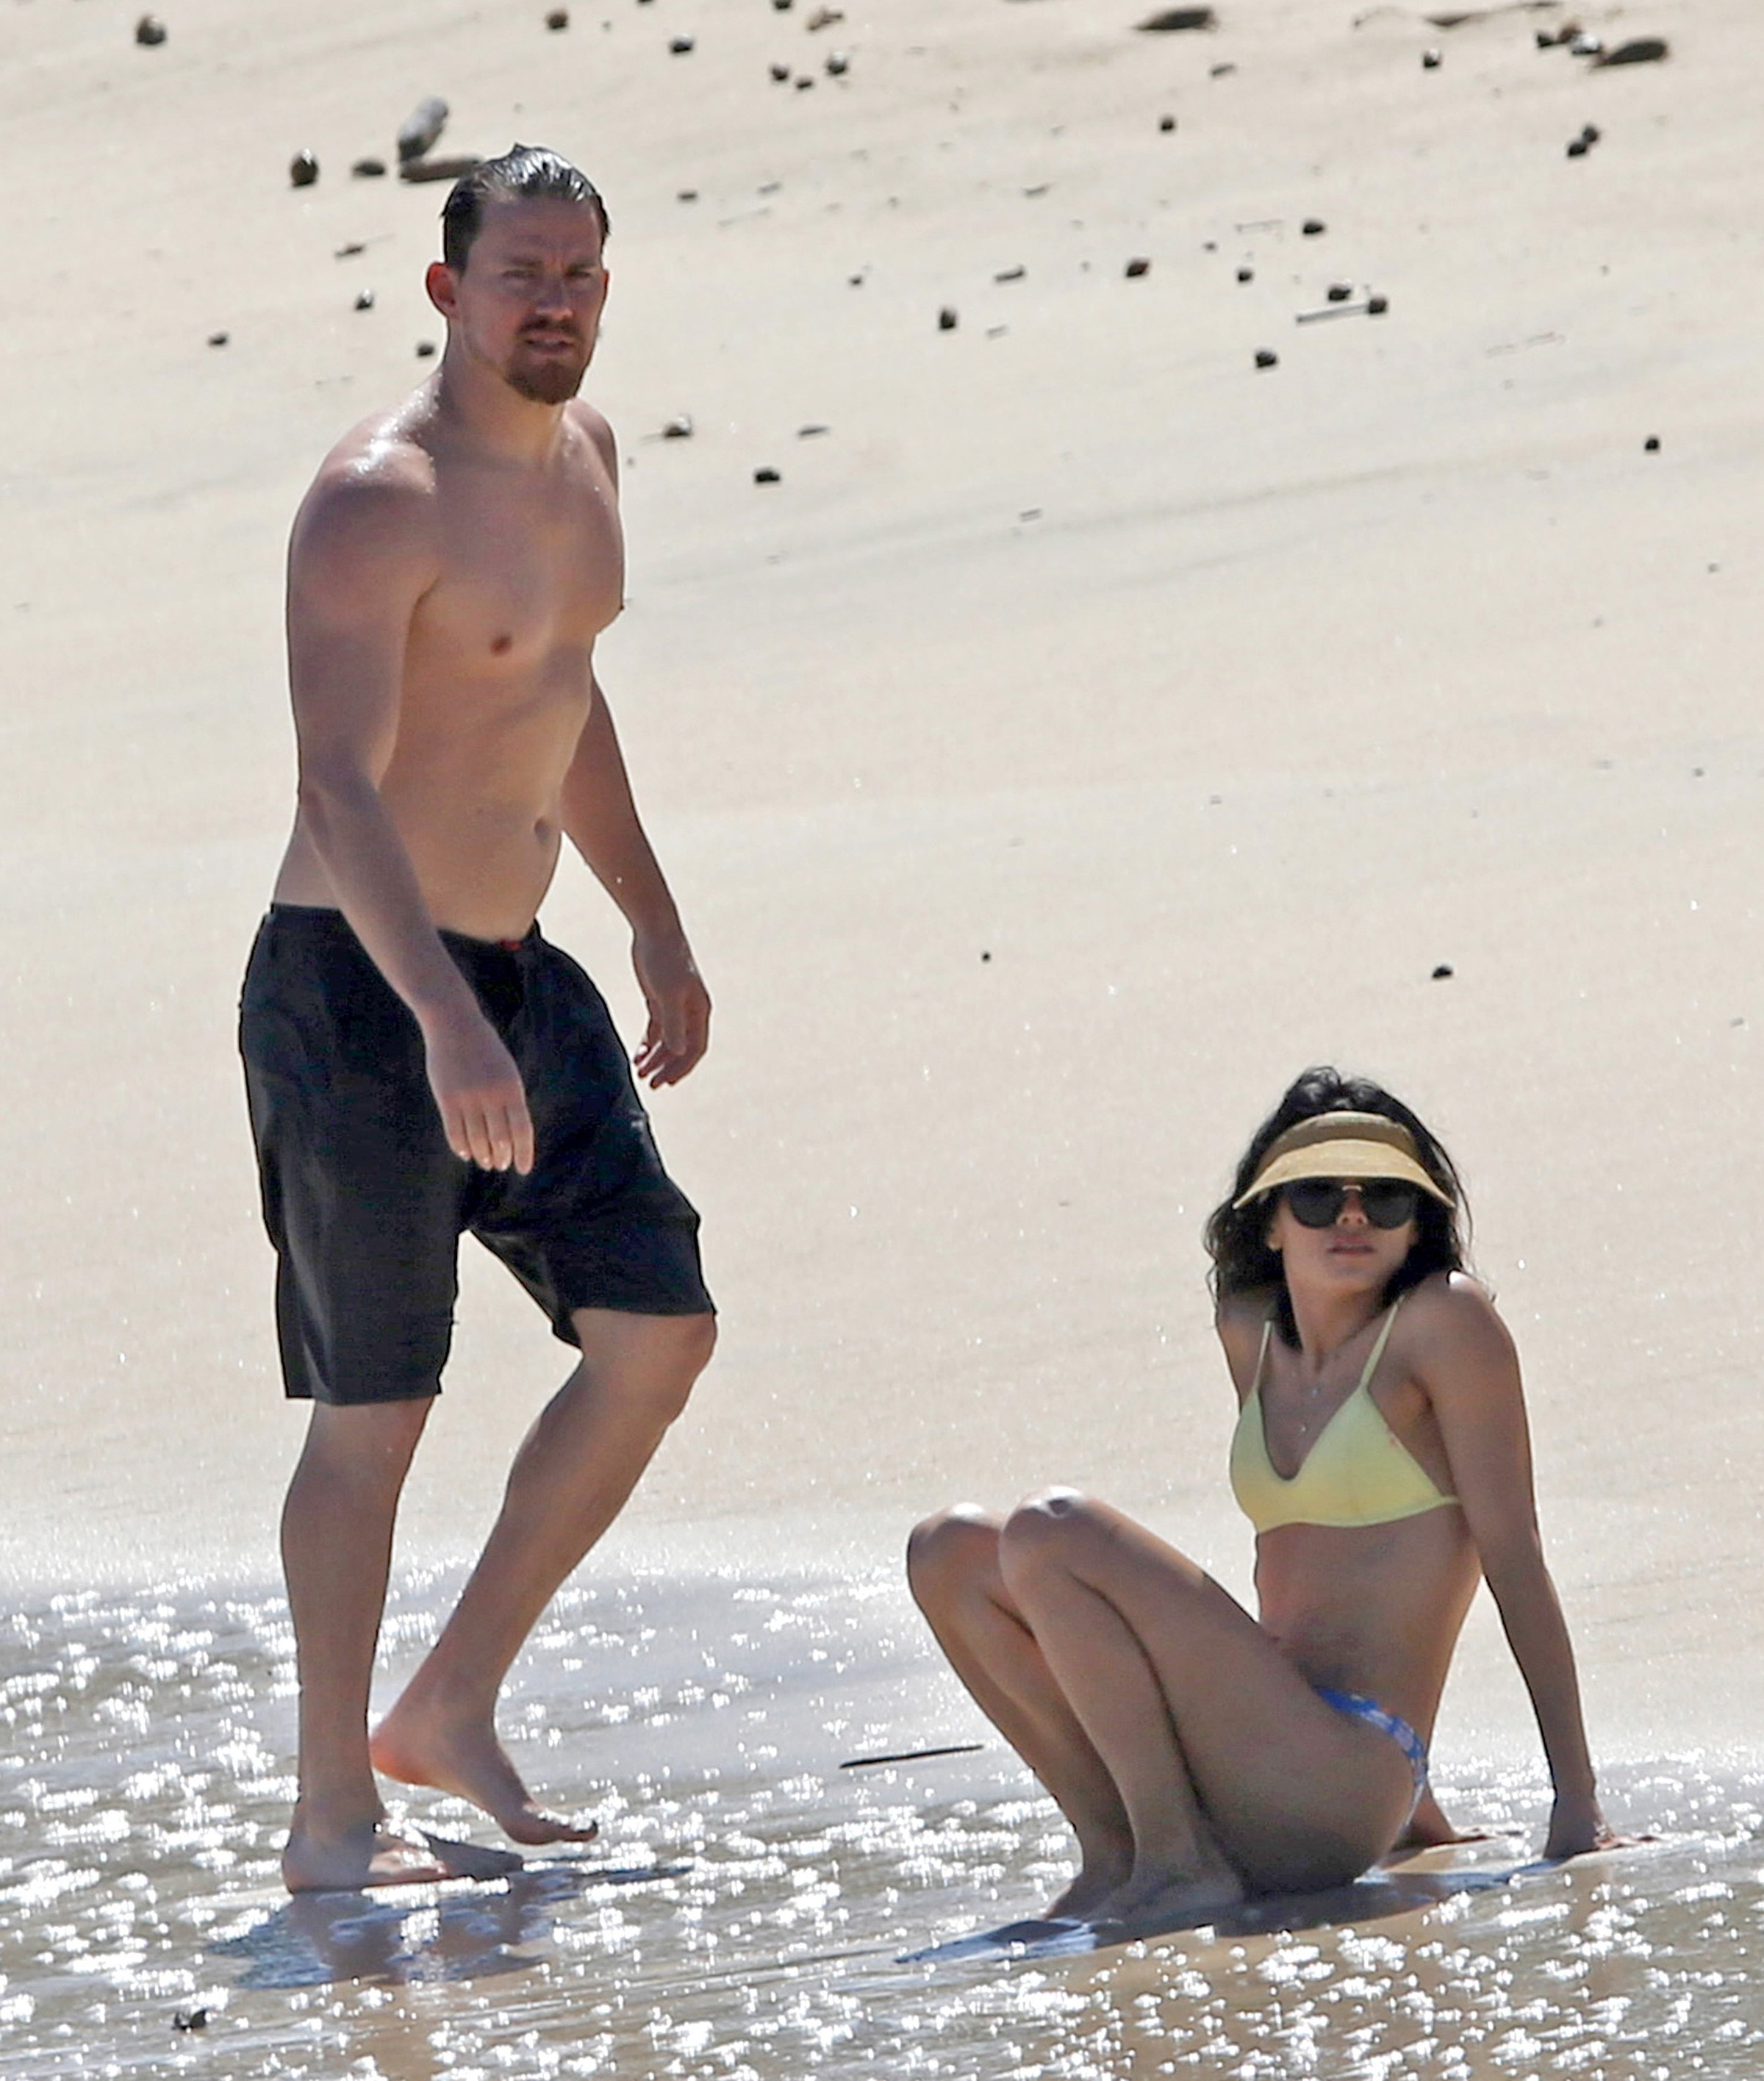 EXCLUSIVE Channing Tatum And Jenna Dewan Flash Their Toned Bodies While Relaxing In Hawaii